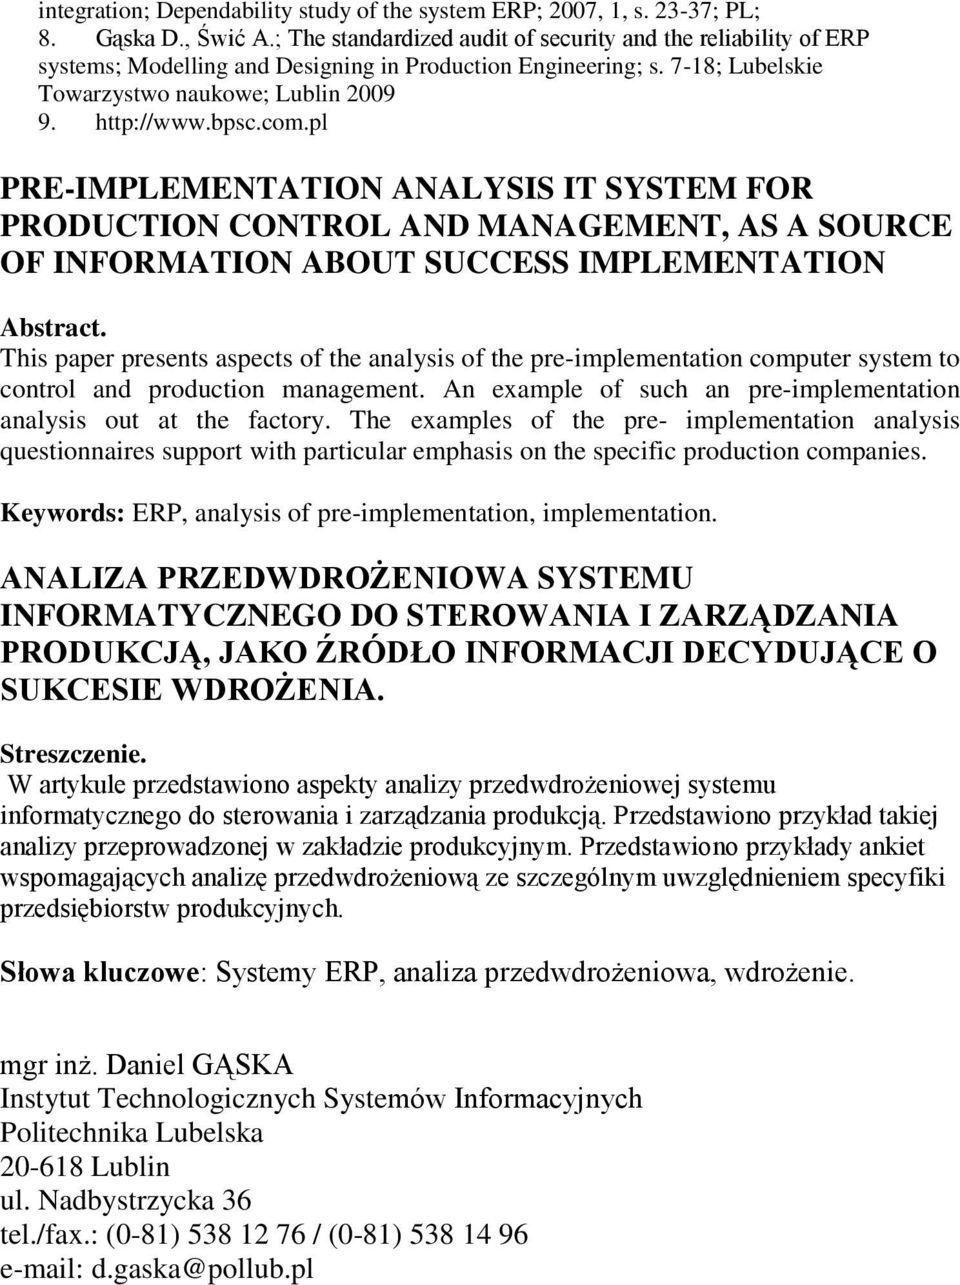 pl PRE-IMPLEMENTATION ANALYSIS IT SYSTEM FOR PRODUCTION CONTROL AND MANAGEMENT, AS A SOURCE OF INFORMATION ABOUT SUCCESS IMPLEMENTATION Abstract.